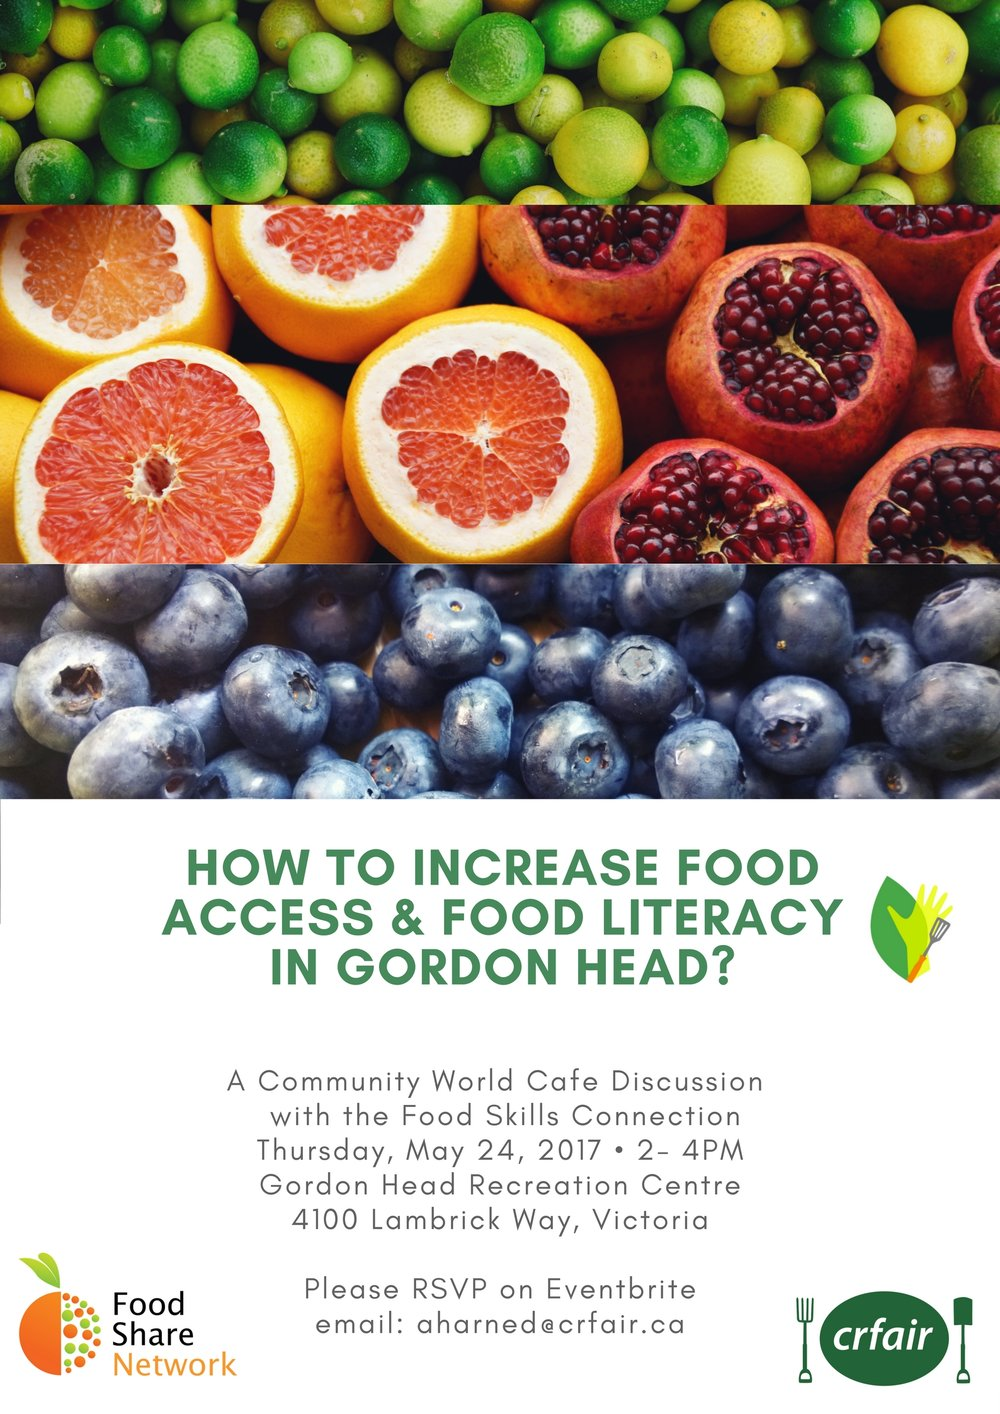 Gordon Head Pilot Project  - The Food Hub Strategy Initiative has focused its efforts in the area of Gordon Head, an identified neighbourhood with high level of food insecurity. Demographics of seniors, students, and newcomers populate this area, while only a handful of grocery stores, sparse number of community gardens, and few food related organizations are available to source food within the neighbourhood. The pilot project is connecting outside support organizations, such as the Food Share Network's Food Rescue Project, Farm to School BC, Shelbourne Community Kitchen, UVIC Free Store and Food Bank with the community through a series of Roundtables in order to help create the capacity to increase food access and food literacy at the neighbourhood level. This project is also identifying ways in which public institutions can play a greater role in providing support as 'food hub' stations to create greater accessibility to food where people live, work, and play.